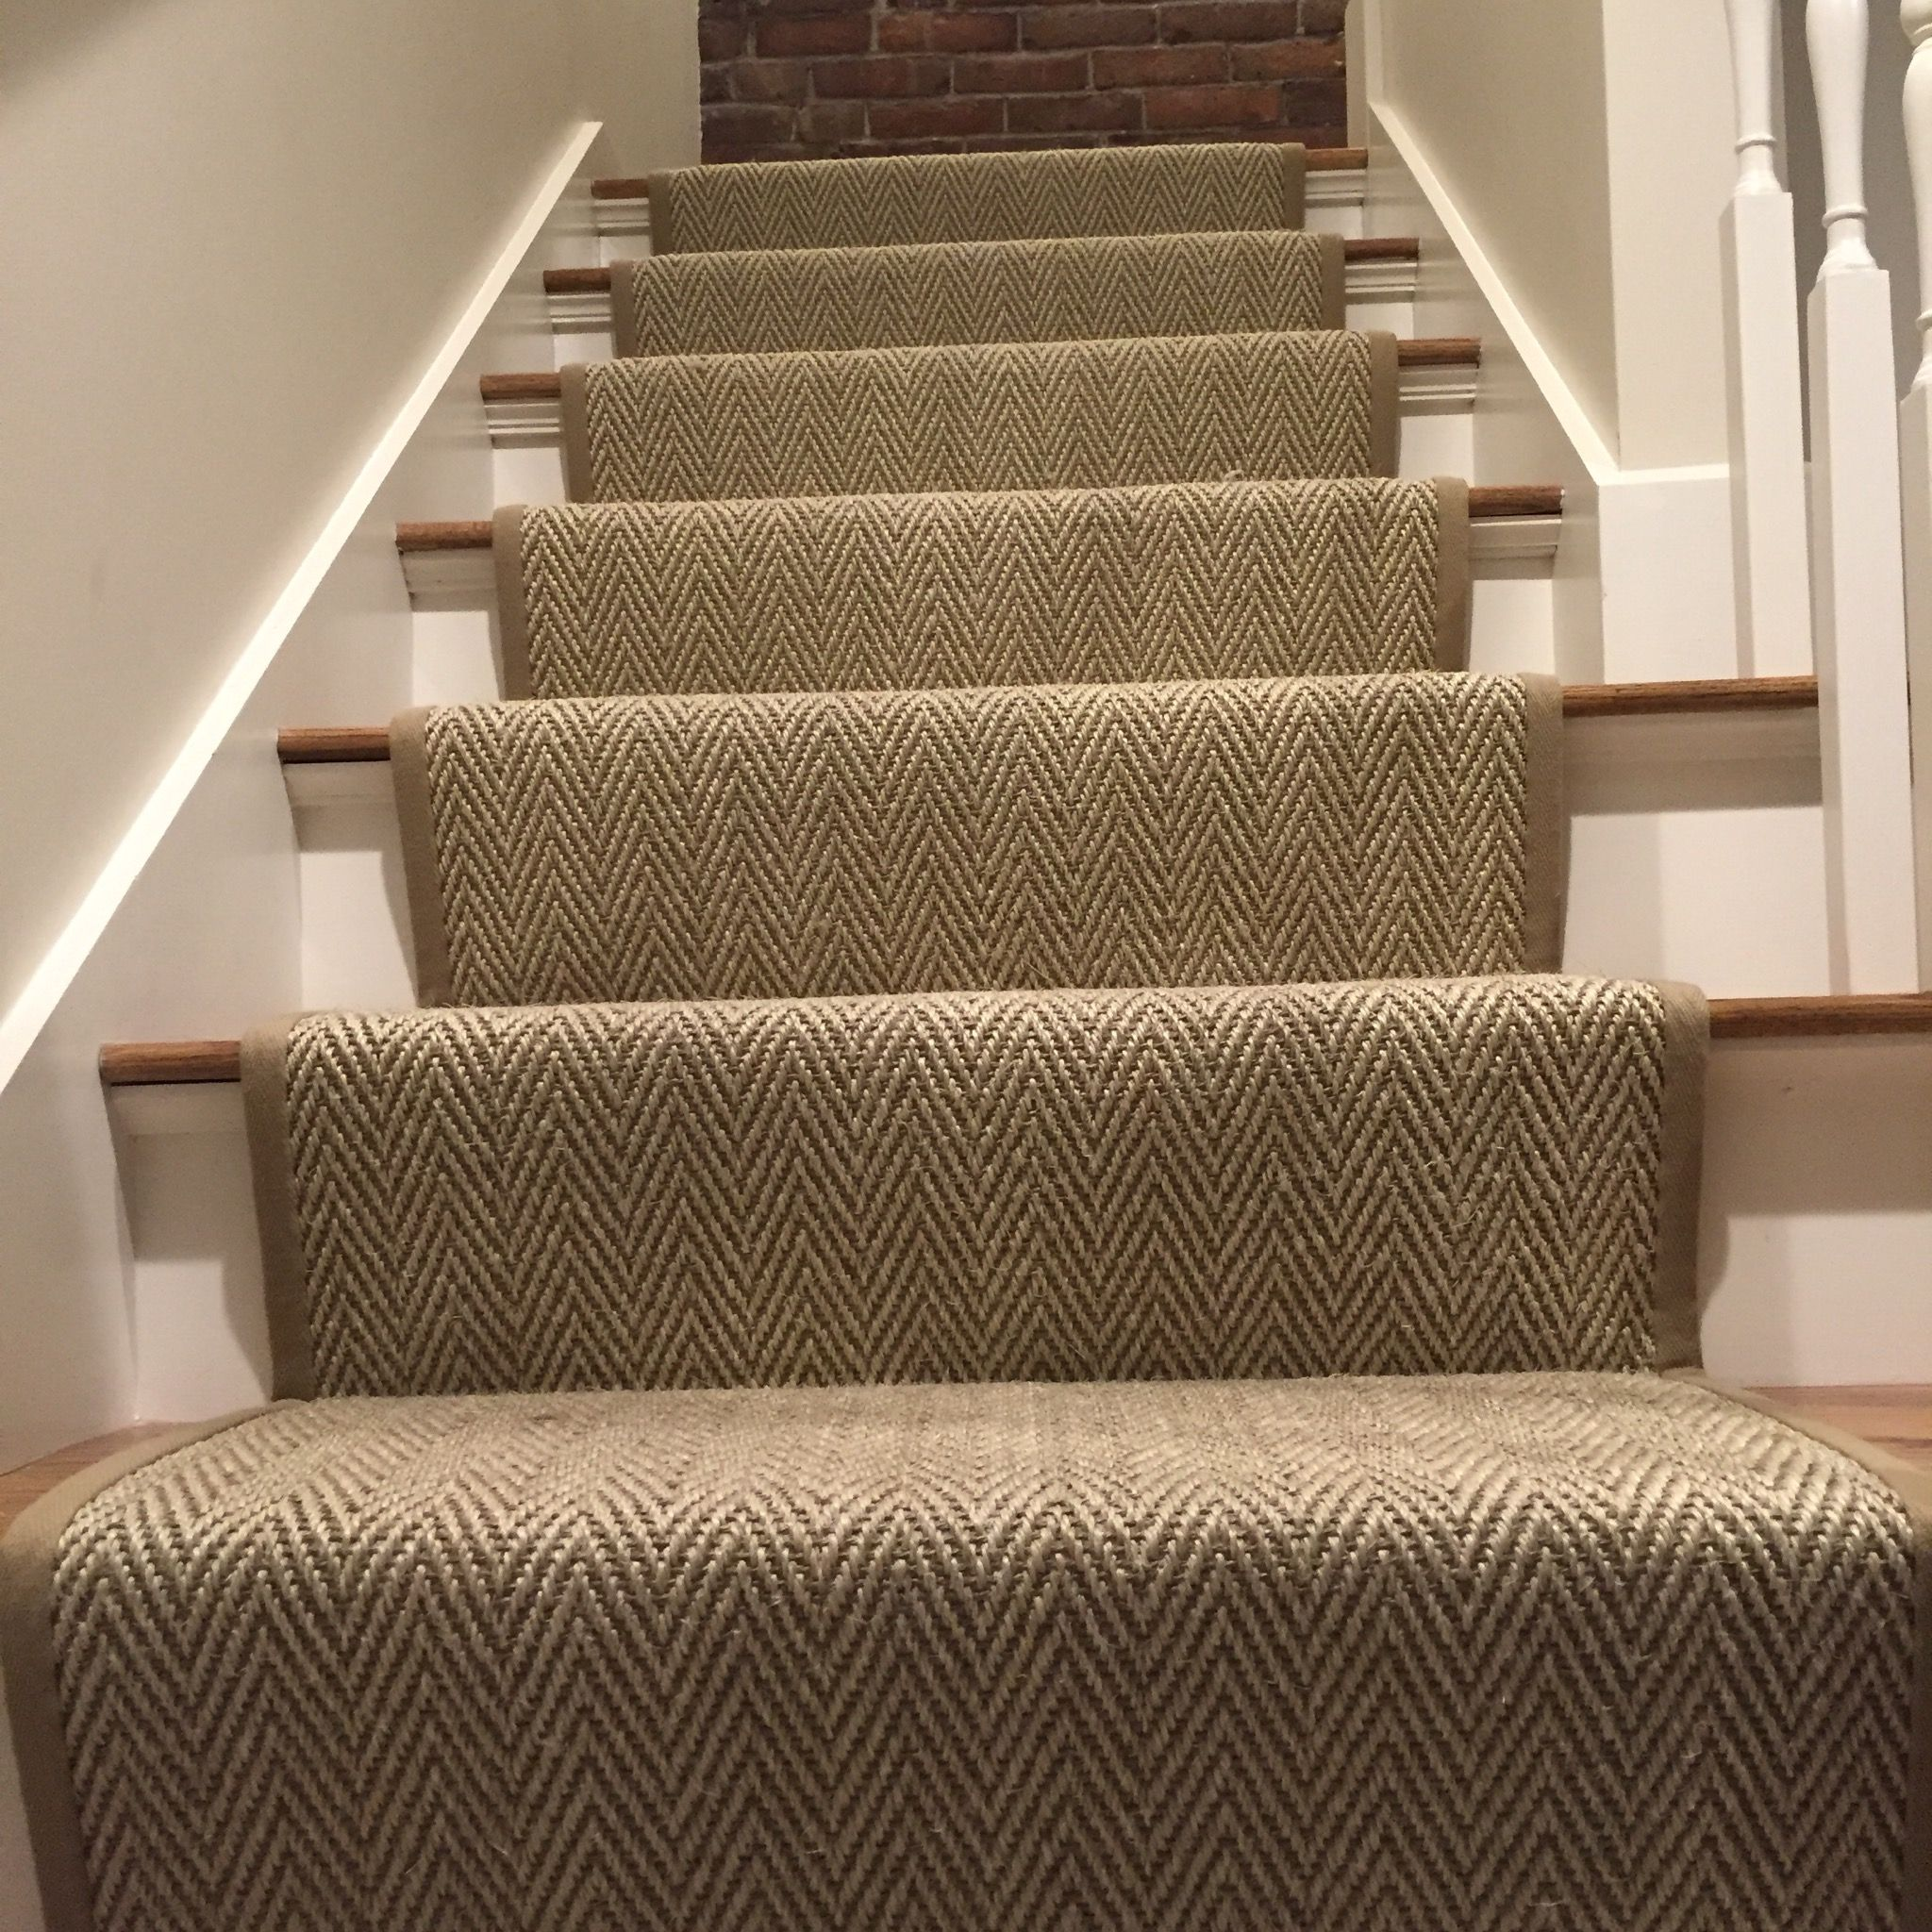 Loving This Custom Herringbone Stair Runner We Fabricated